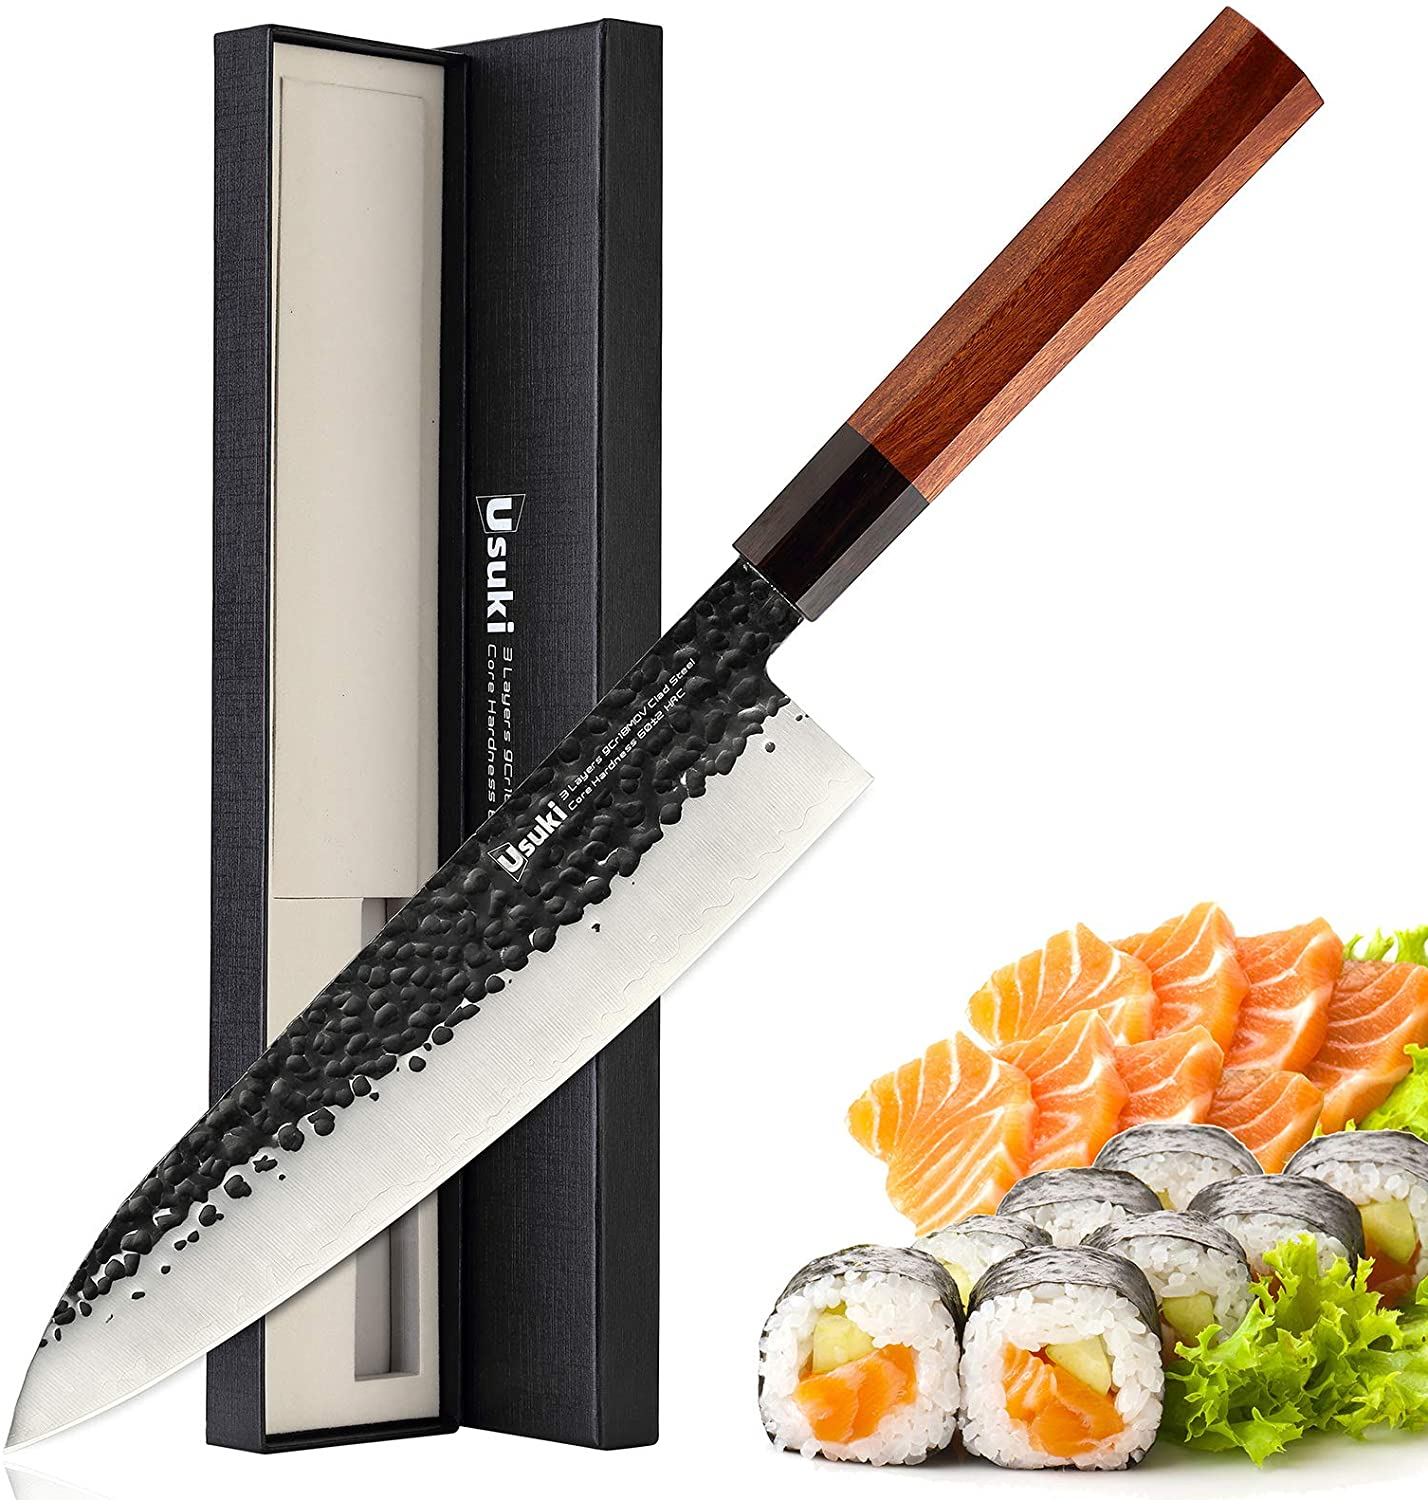 Best Japanese knife for slicing beef- Usuki Gyuto Chef's Knife